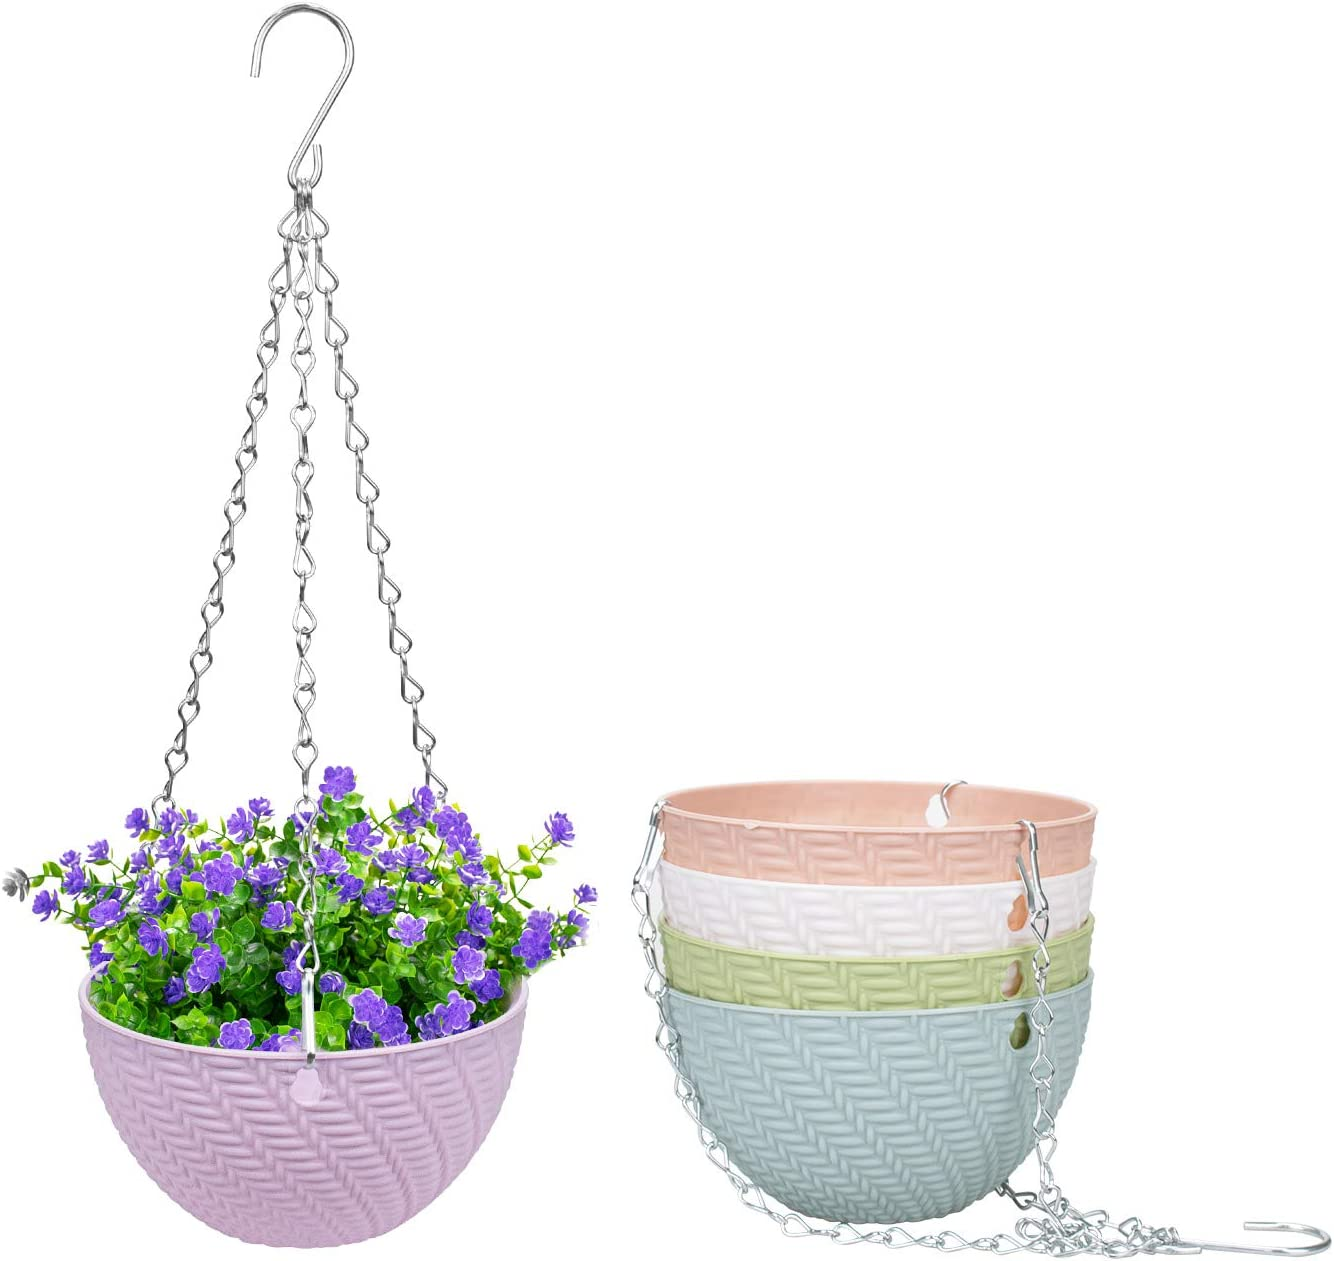 Foraineam 5 Pack Mini Hanging Planters Garden Self-Watering Flower Plant Pot Container Succulent Planter Pots with Hanging Chain